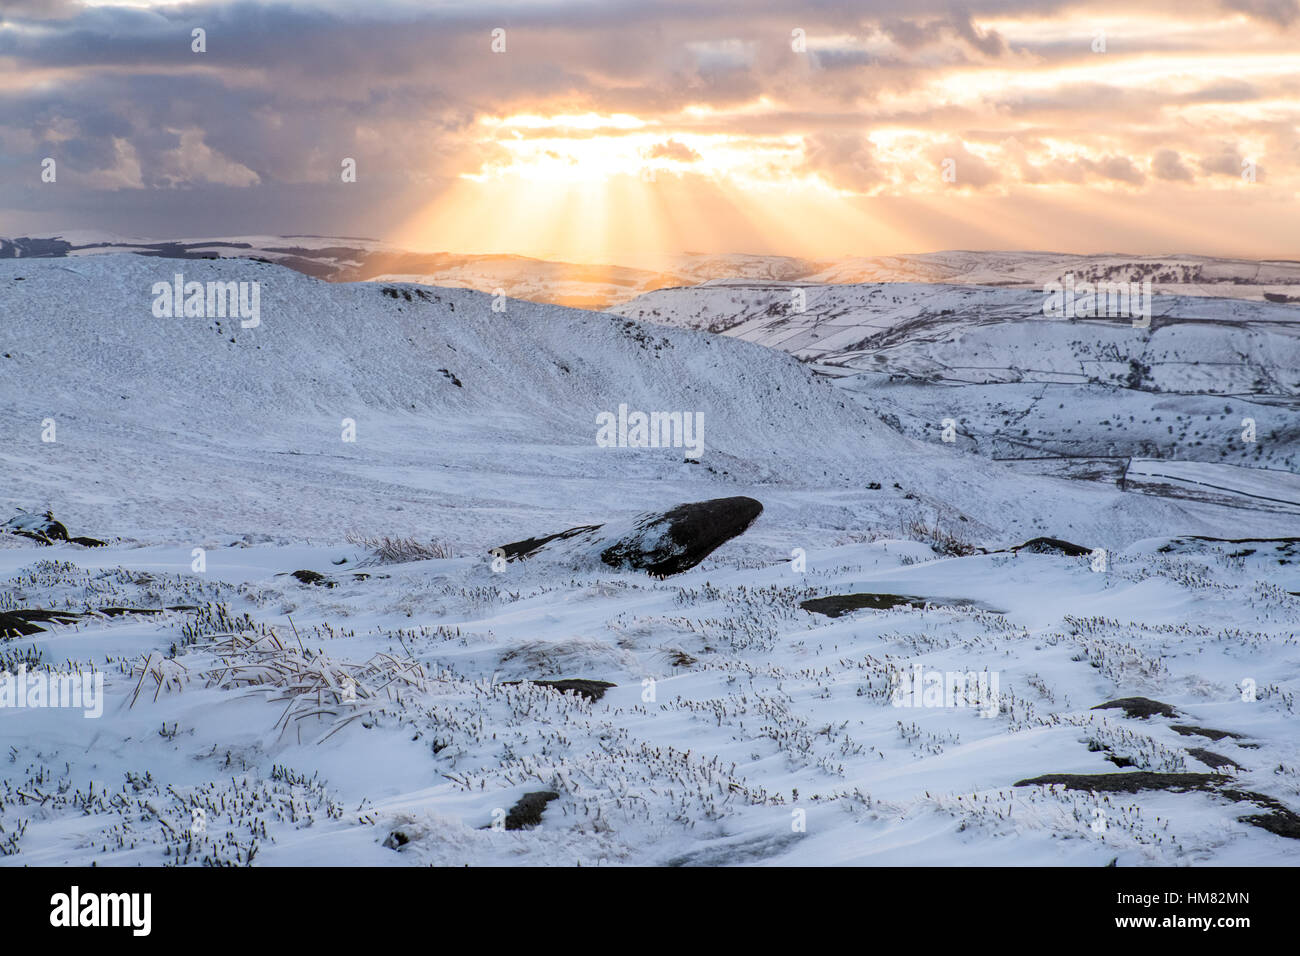 Winter in the Derbyshire Peak District from Kinder Scout - Stock Image